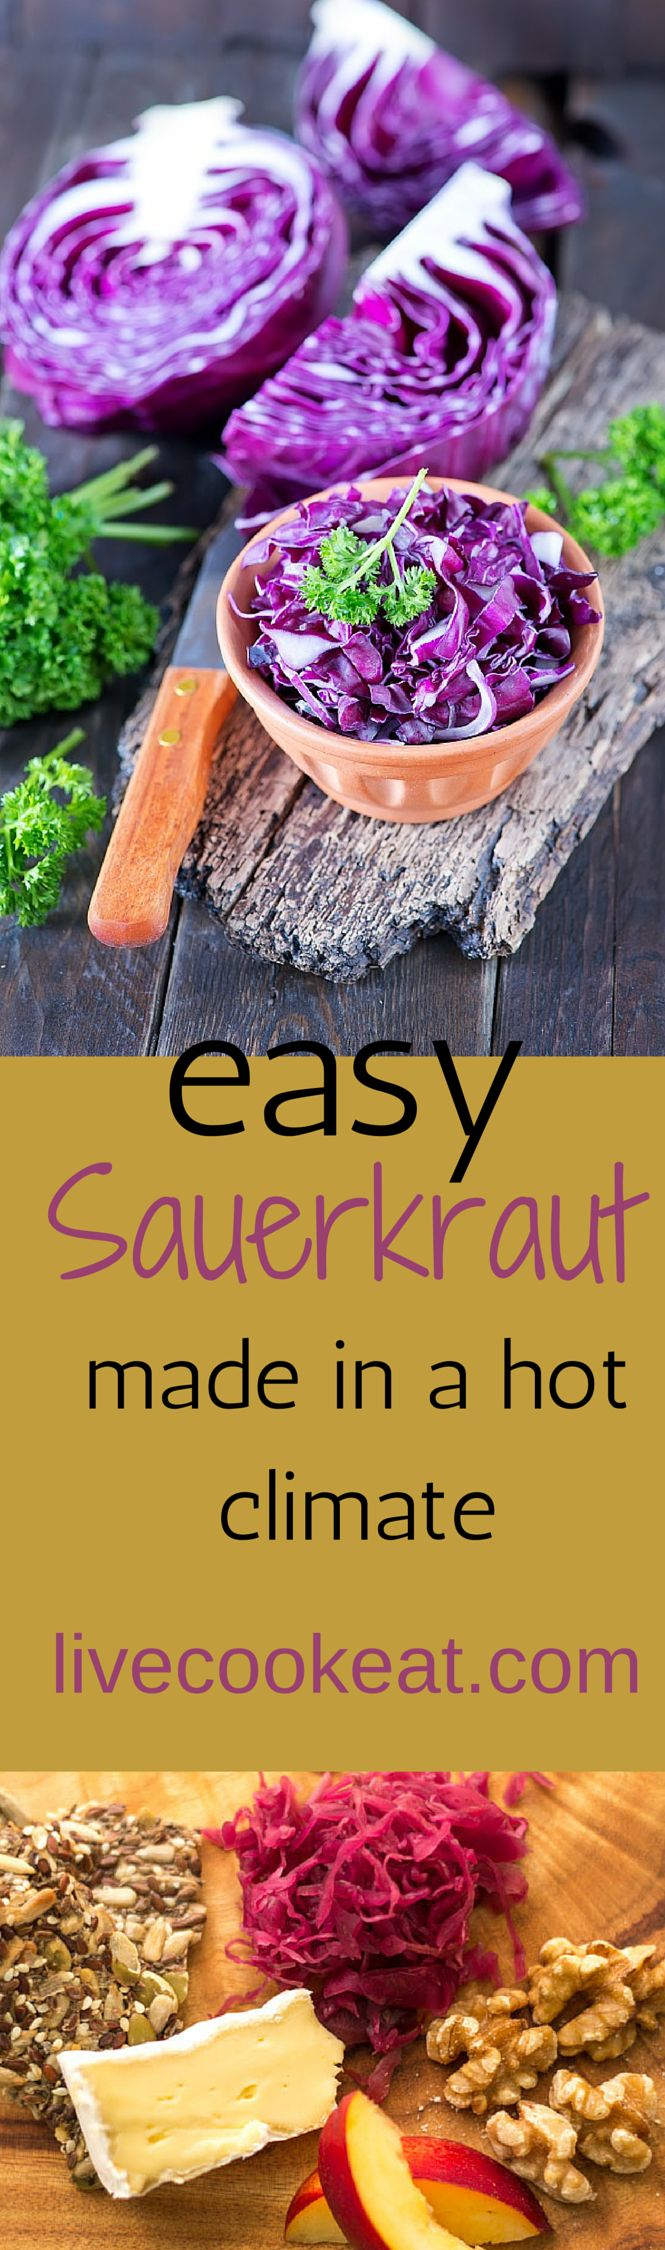 Fermented food is great for keeping our gut healthy Try this easy recipe for Sauerkraut. If you have trouble because you are in a hot climate, make sure you check your sauerkraut often www.livecookeat.com